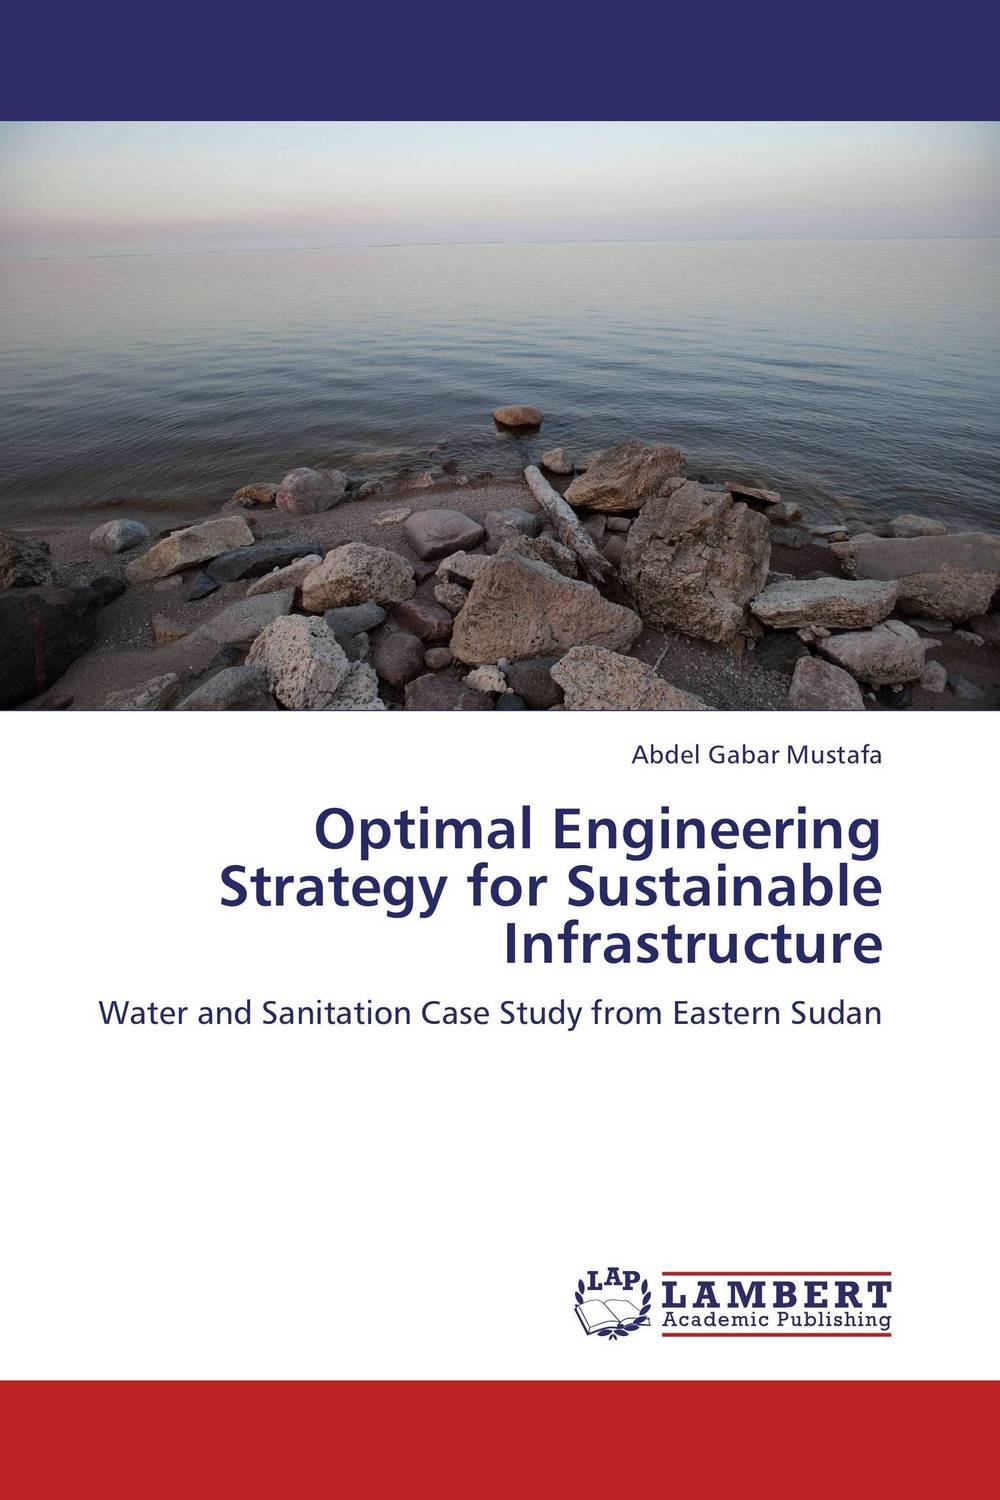 Optimal Engineering Strategy for Sustainable Infrastructure